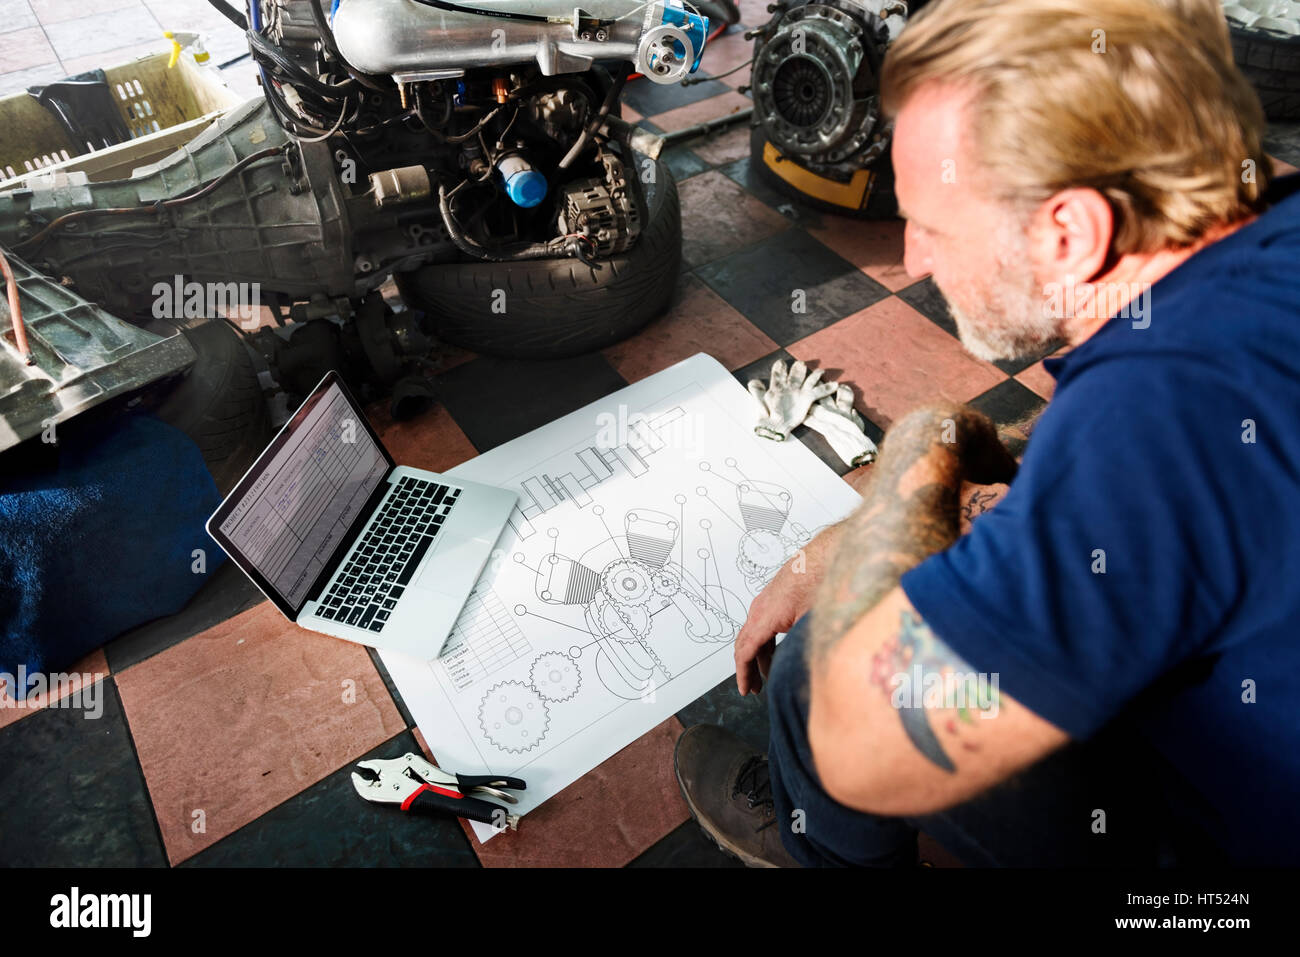 Car parts sketch stock photos car parts sketch stock images alamy construction master plan draft blueprint male laptop concept stock image malvernweather